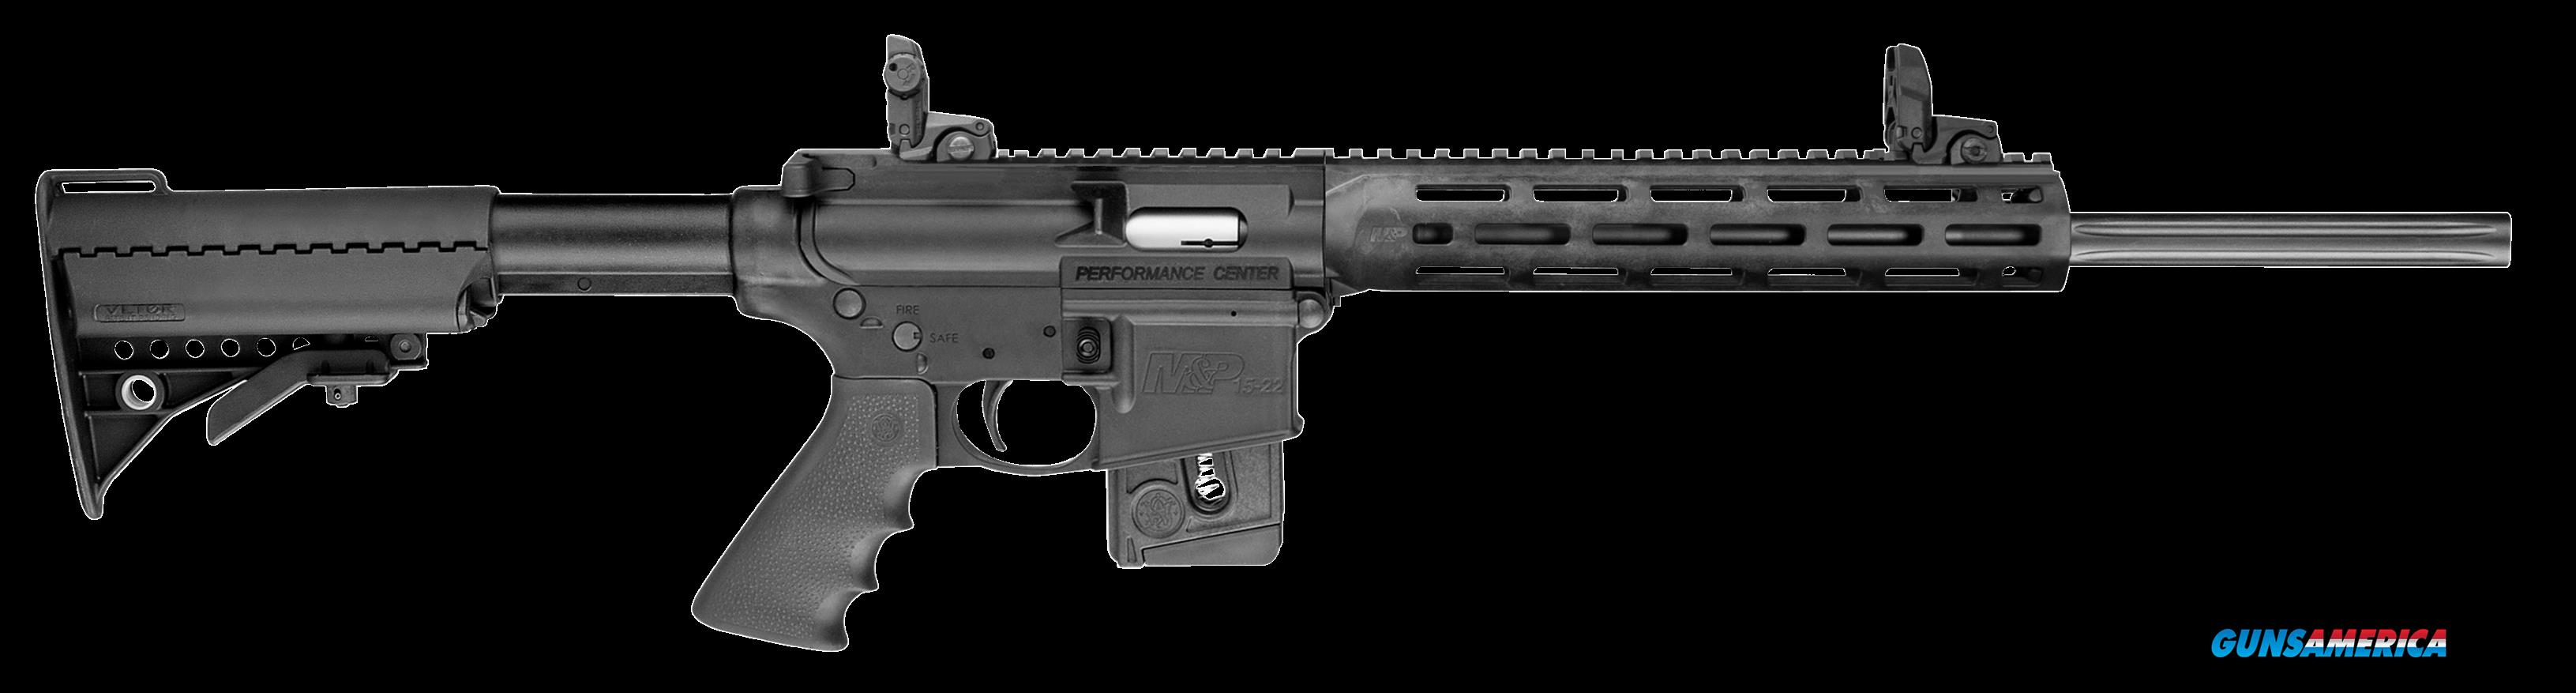 Smith & Wesson M&p15-22, Swl Mp1522spt  11507 Pc 22lr 18 Blk *ma-md-nj*  Guns > Pistols > 1911 Pistol Copies (non-Colt)